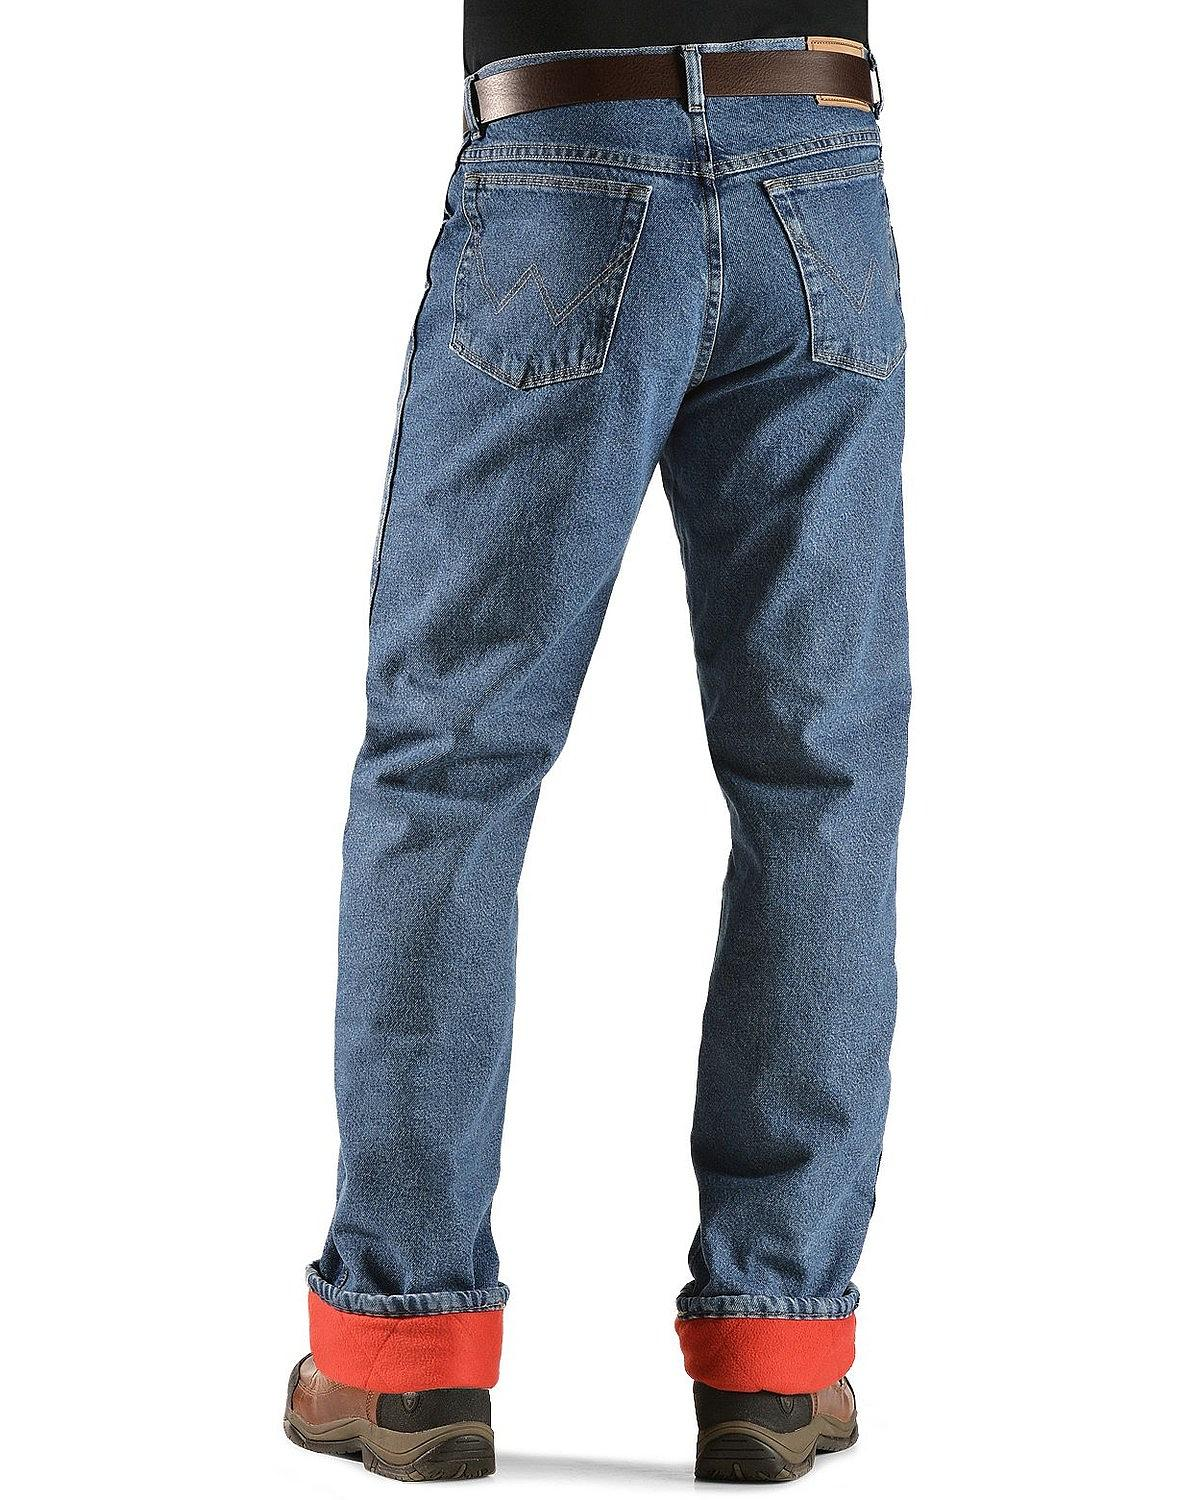 Image Is Loading Wrangler Jeans Rugged Wear Relaxed Fit Flannel Lined